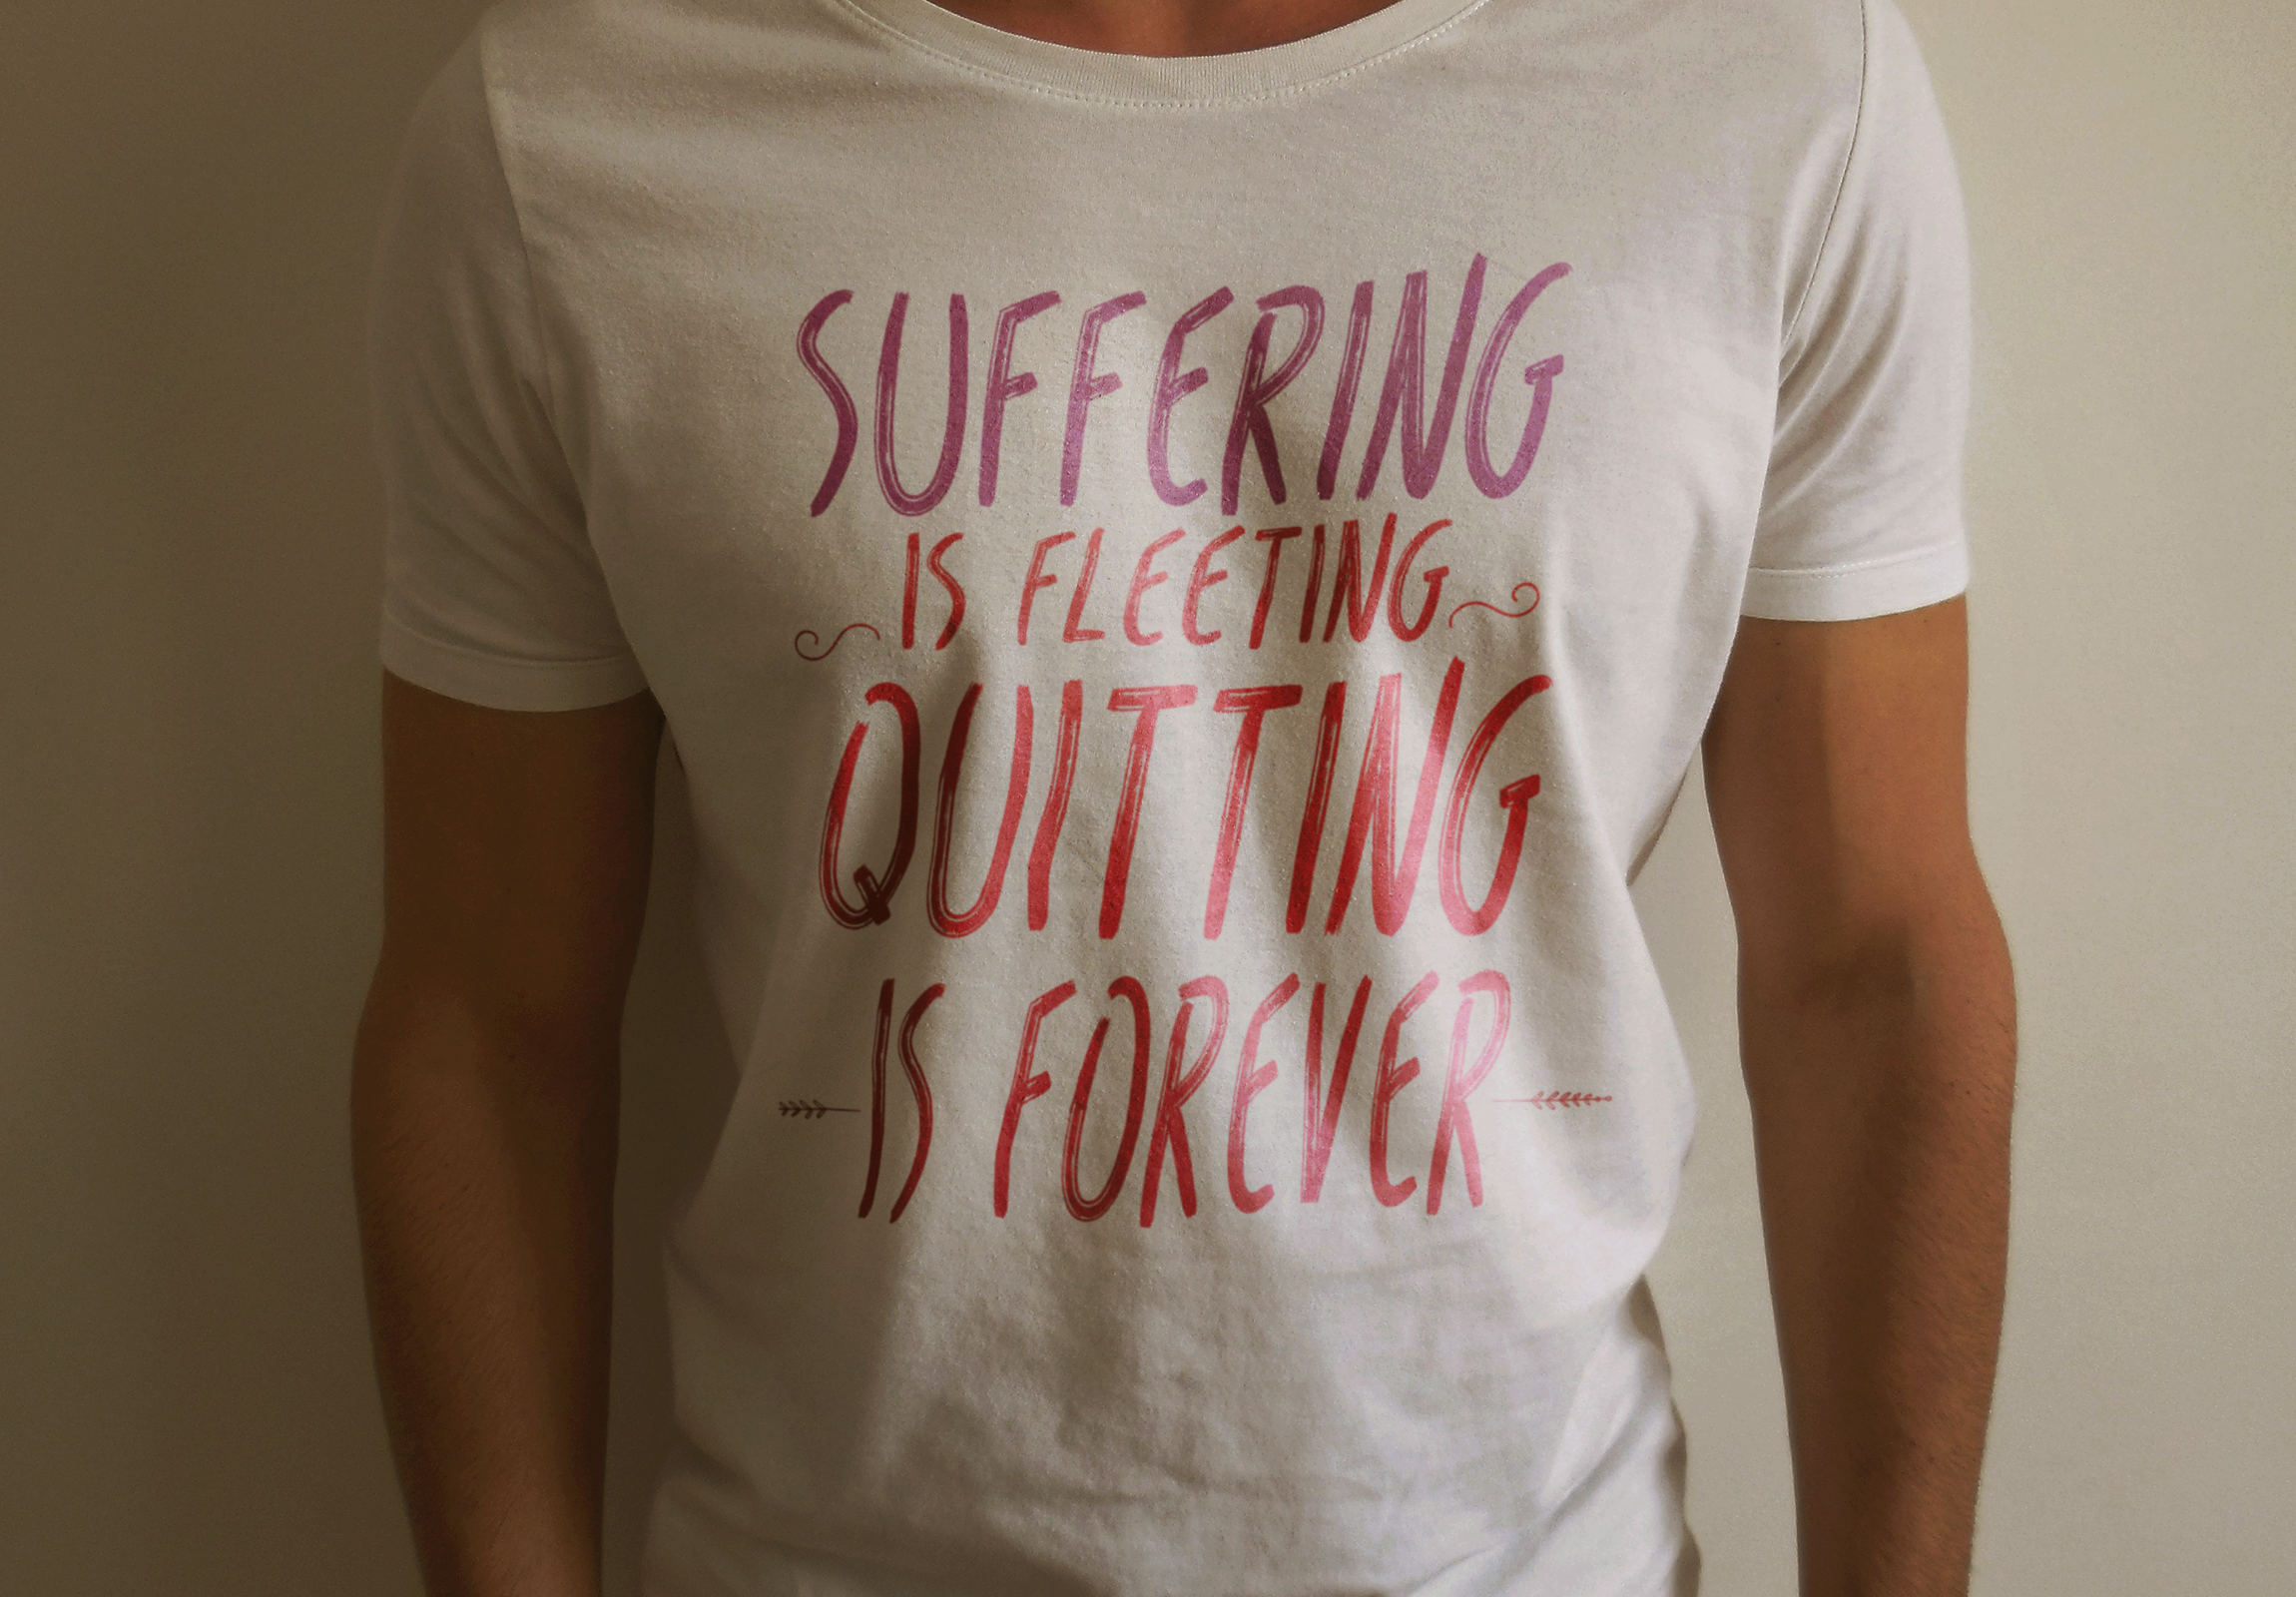 [Image] Suffering is fleeting, Quitting is forever